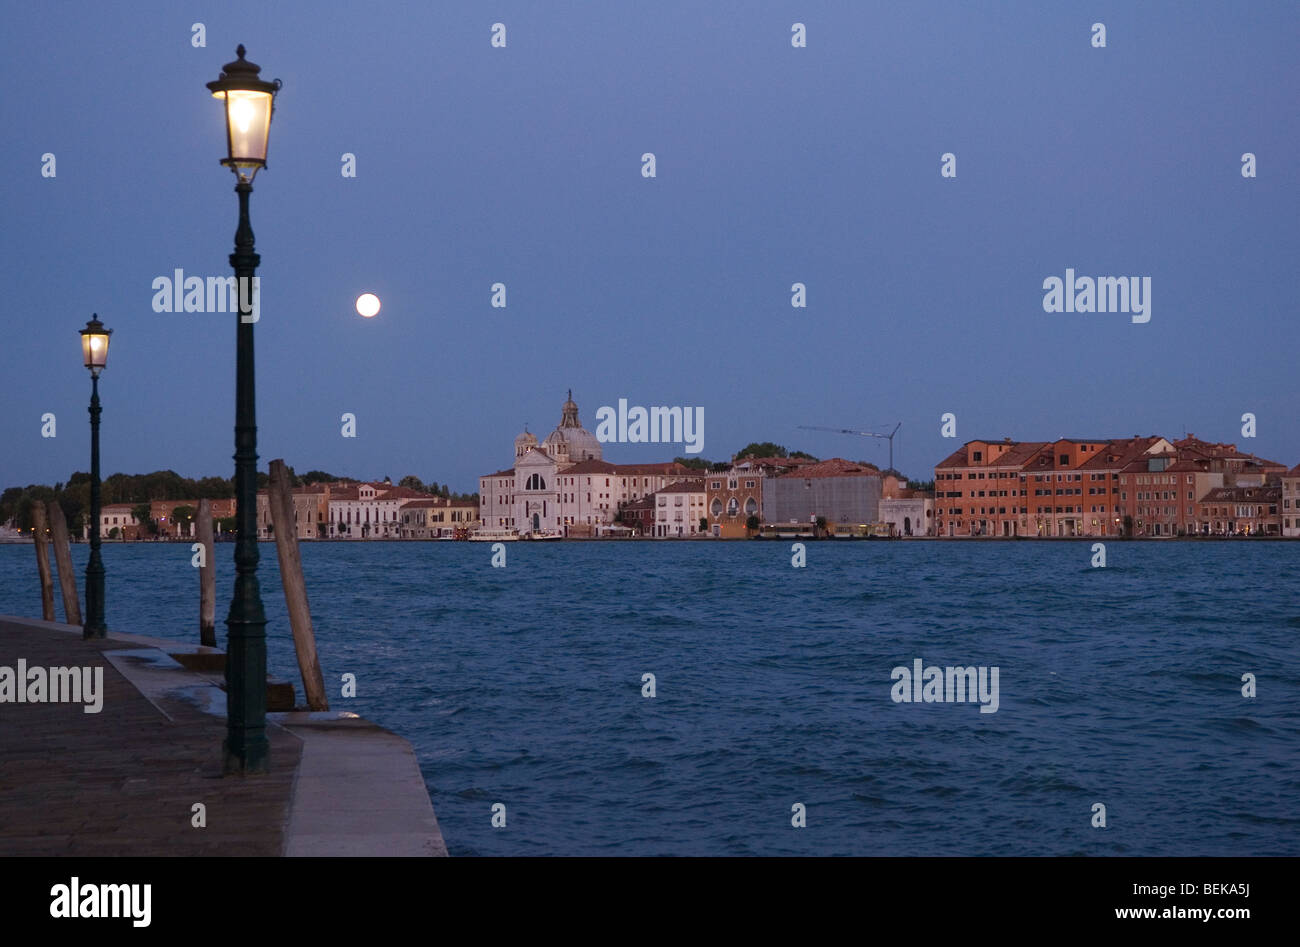 Venice Italy The church of La Giudecca. across the Canale della Giudecca. HOMER SYKES - Stock Image